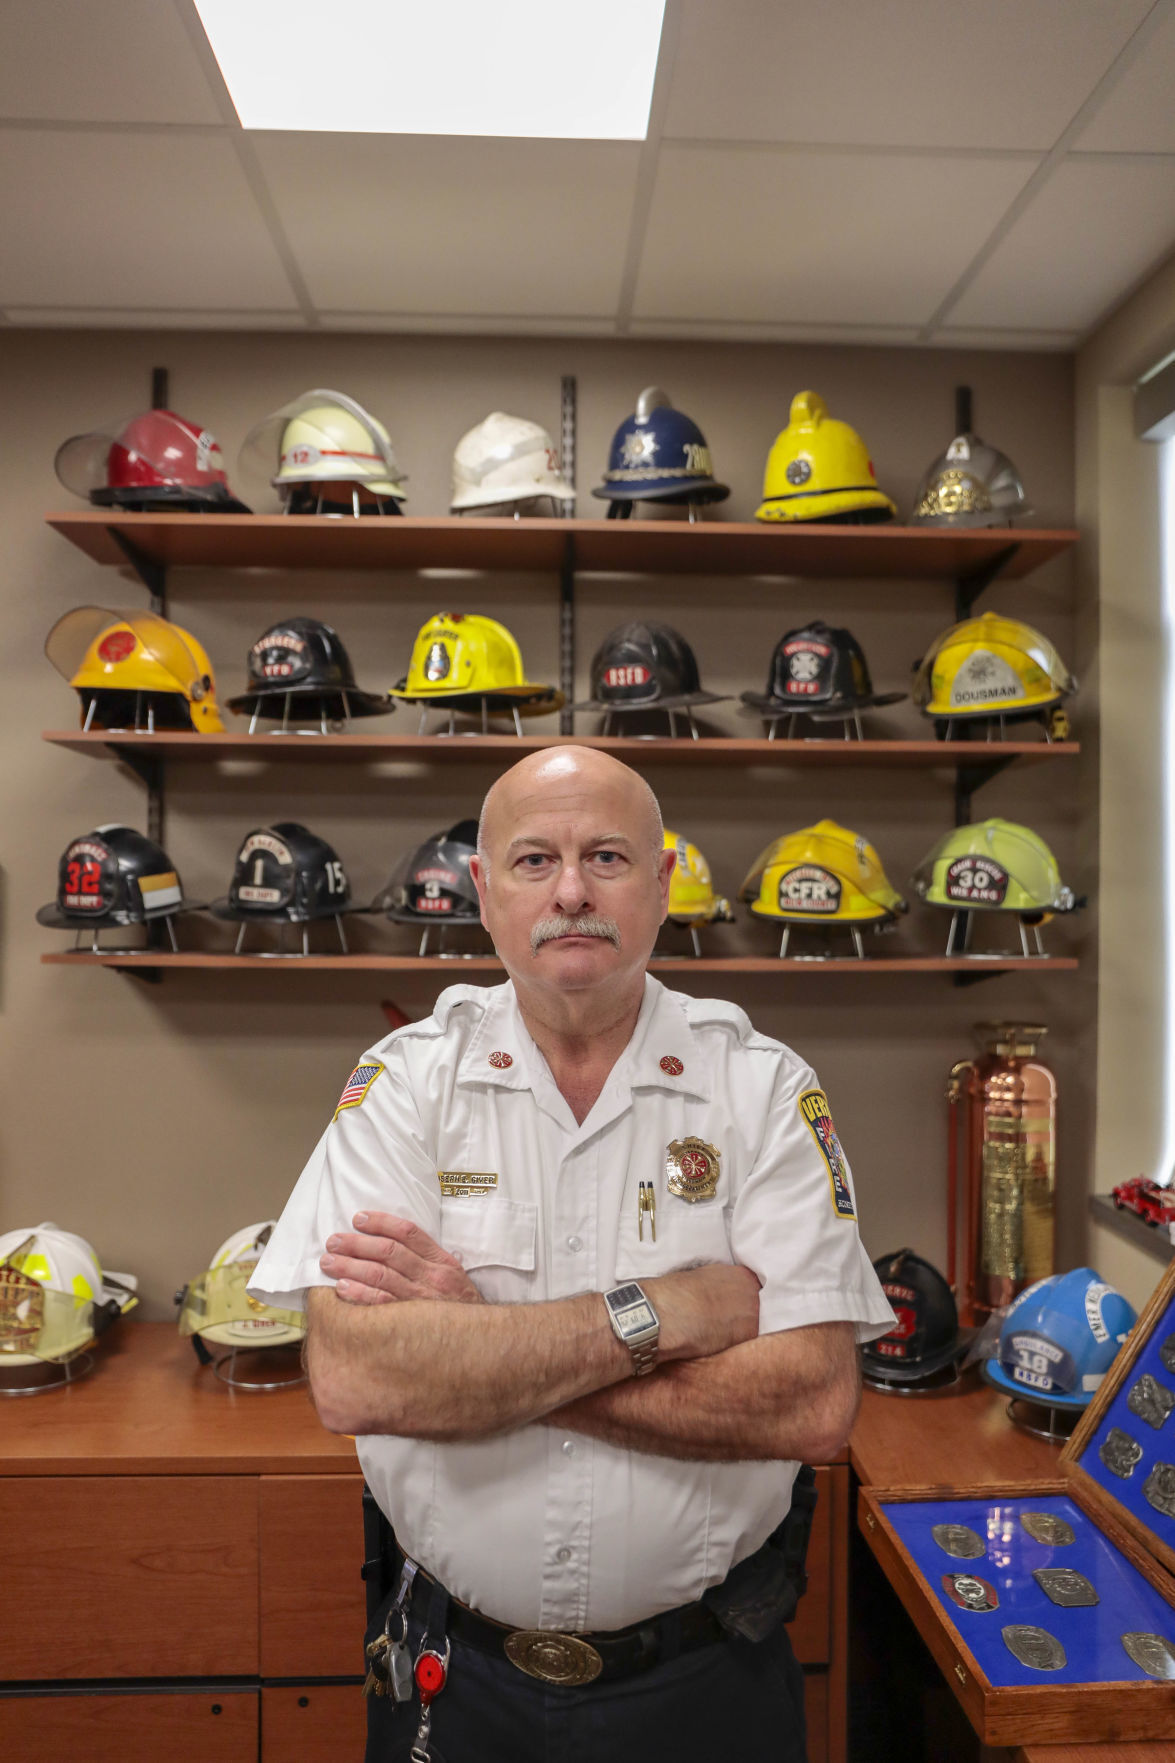 Fire chief Giver retires